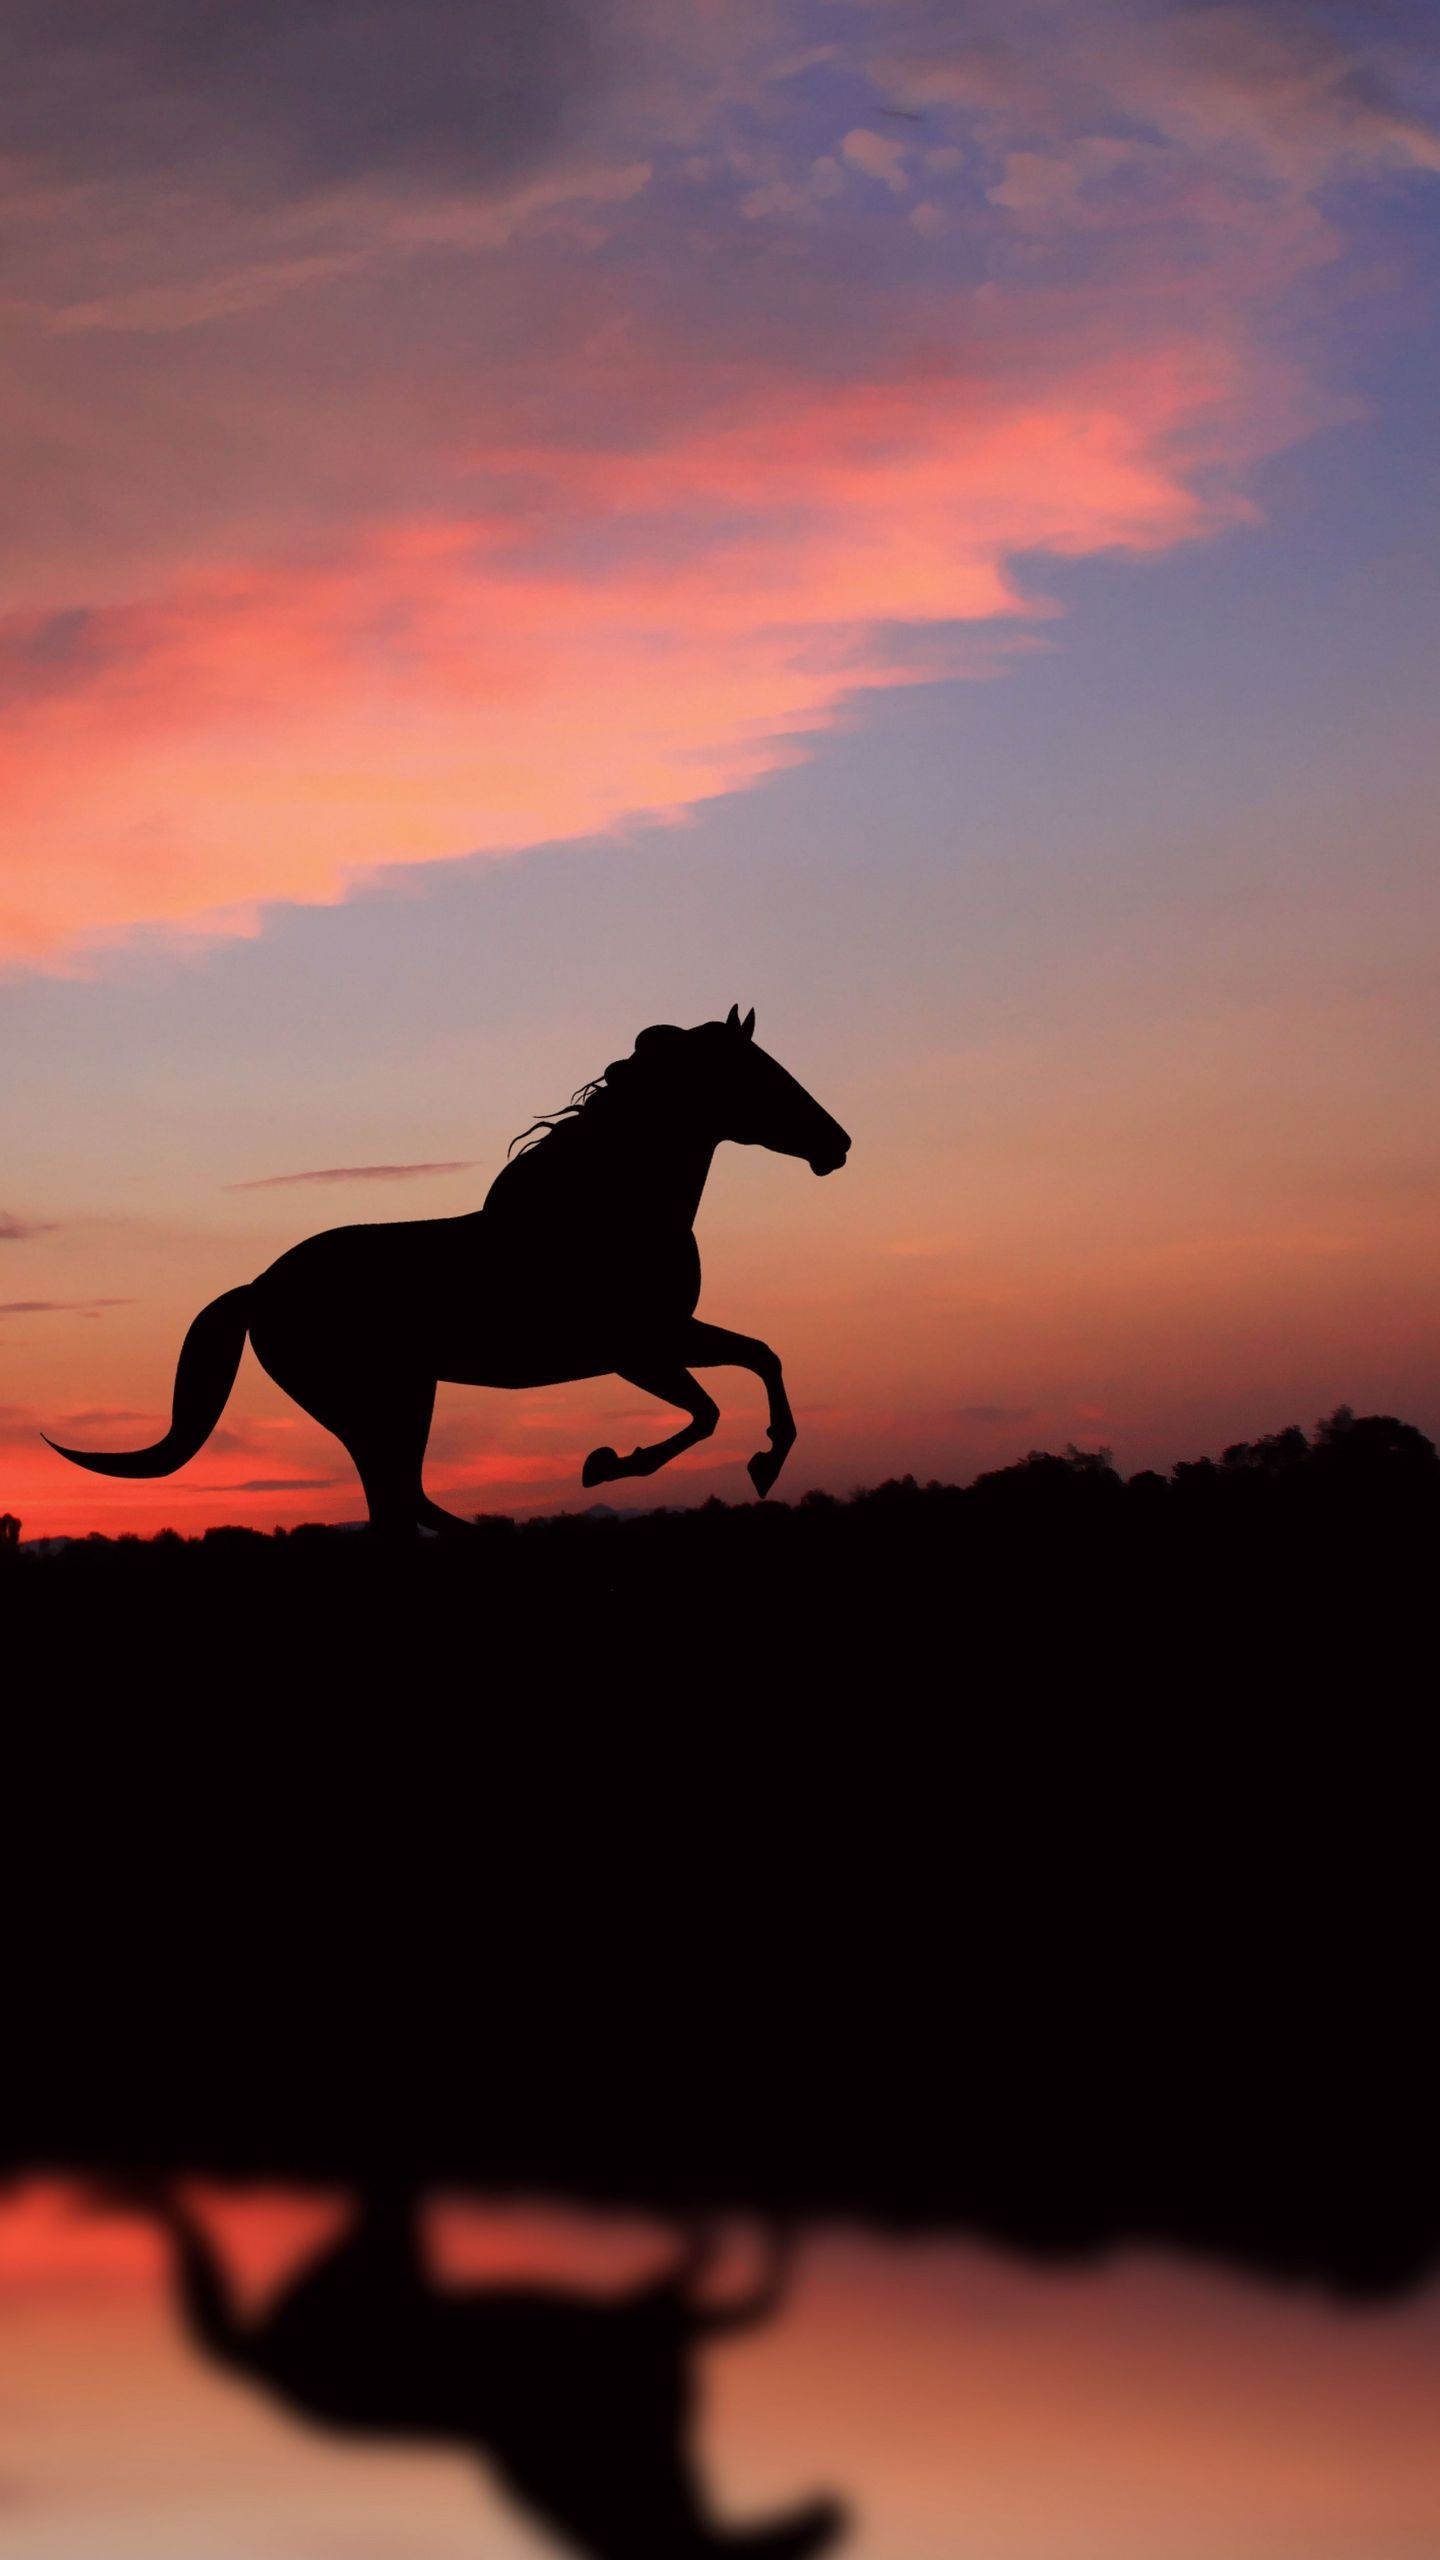 Animalbackgroundiphone Animalwallpaperiphone In 2021 Horse Wallpaper Beautiful Horse Pictures Horse Background